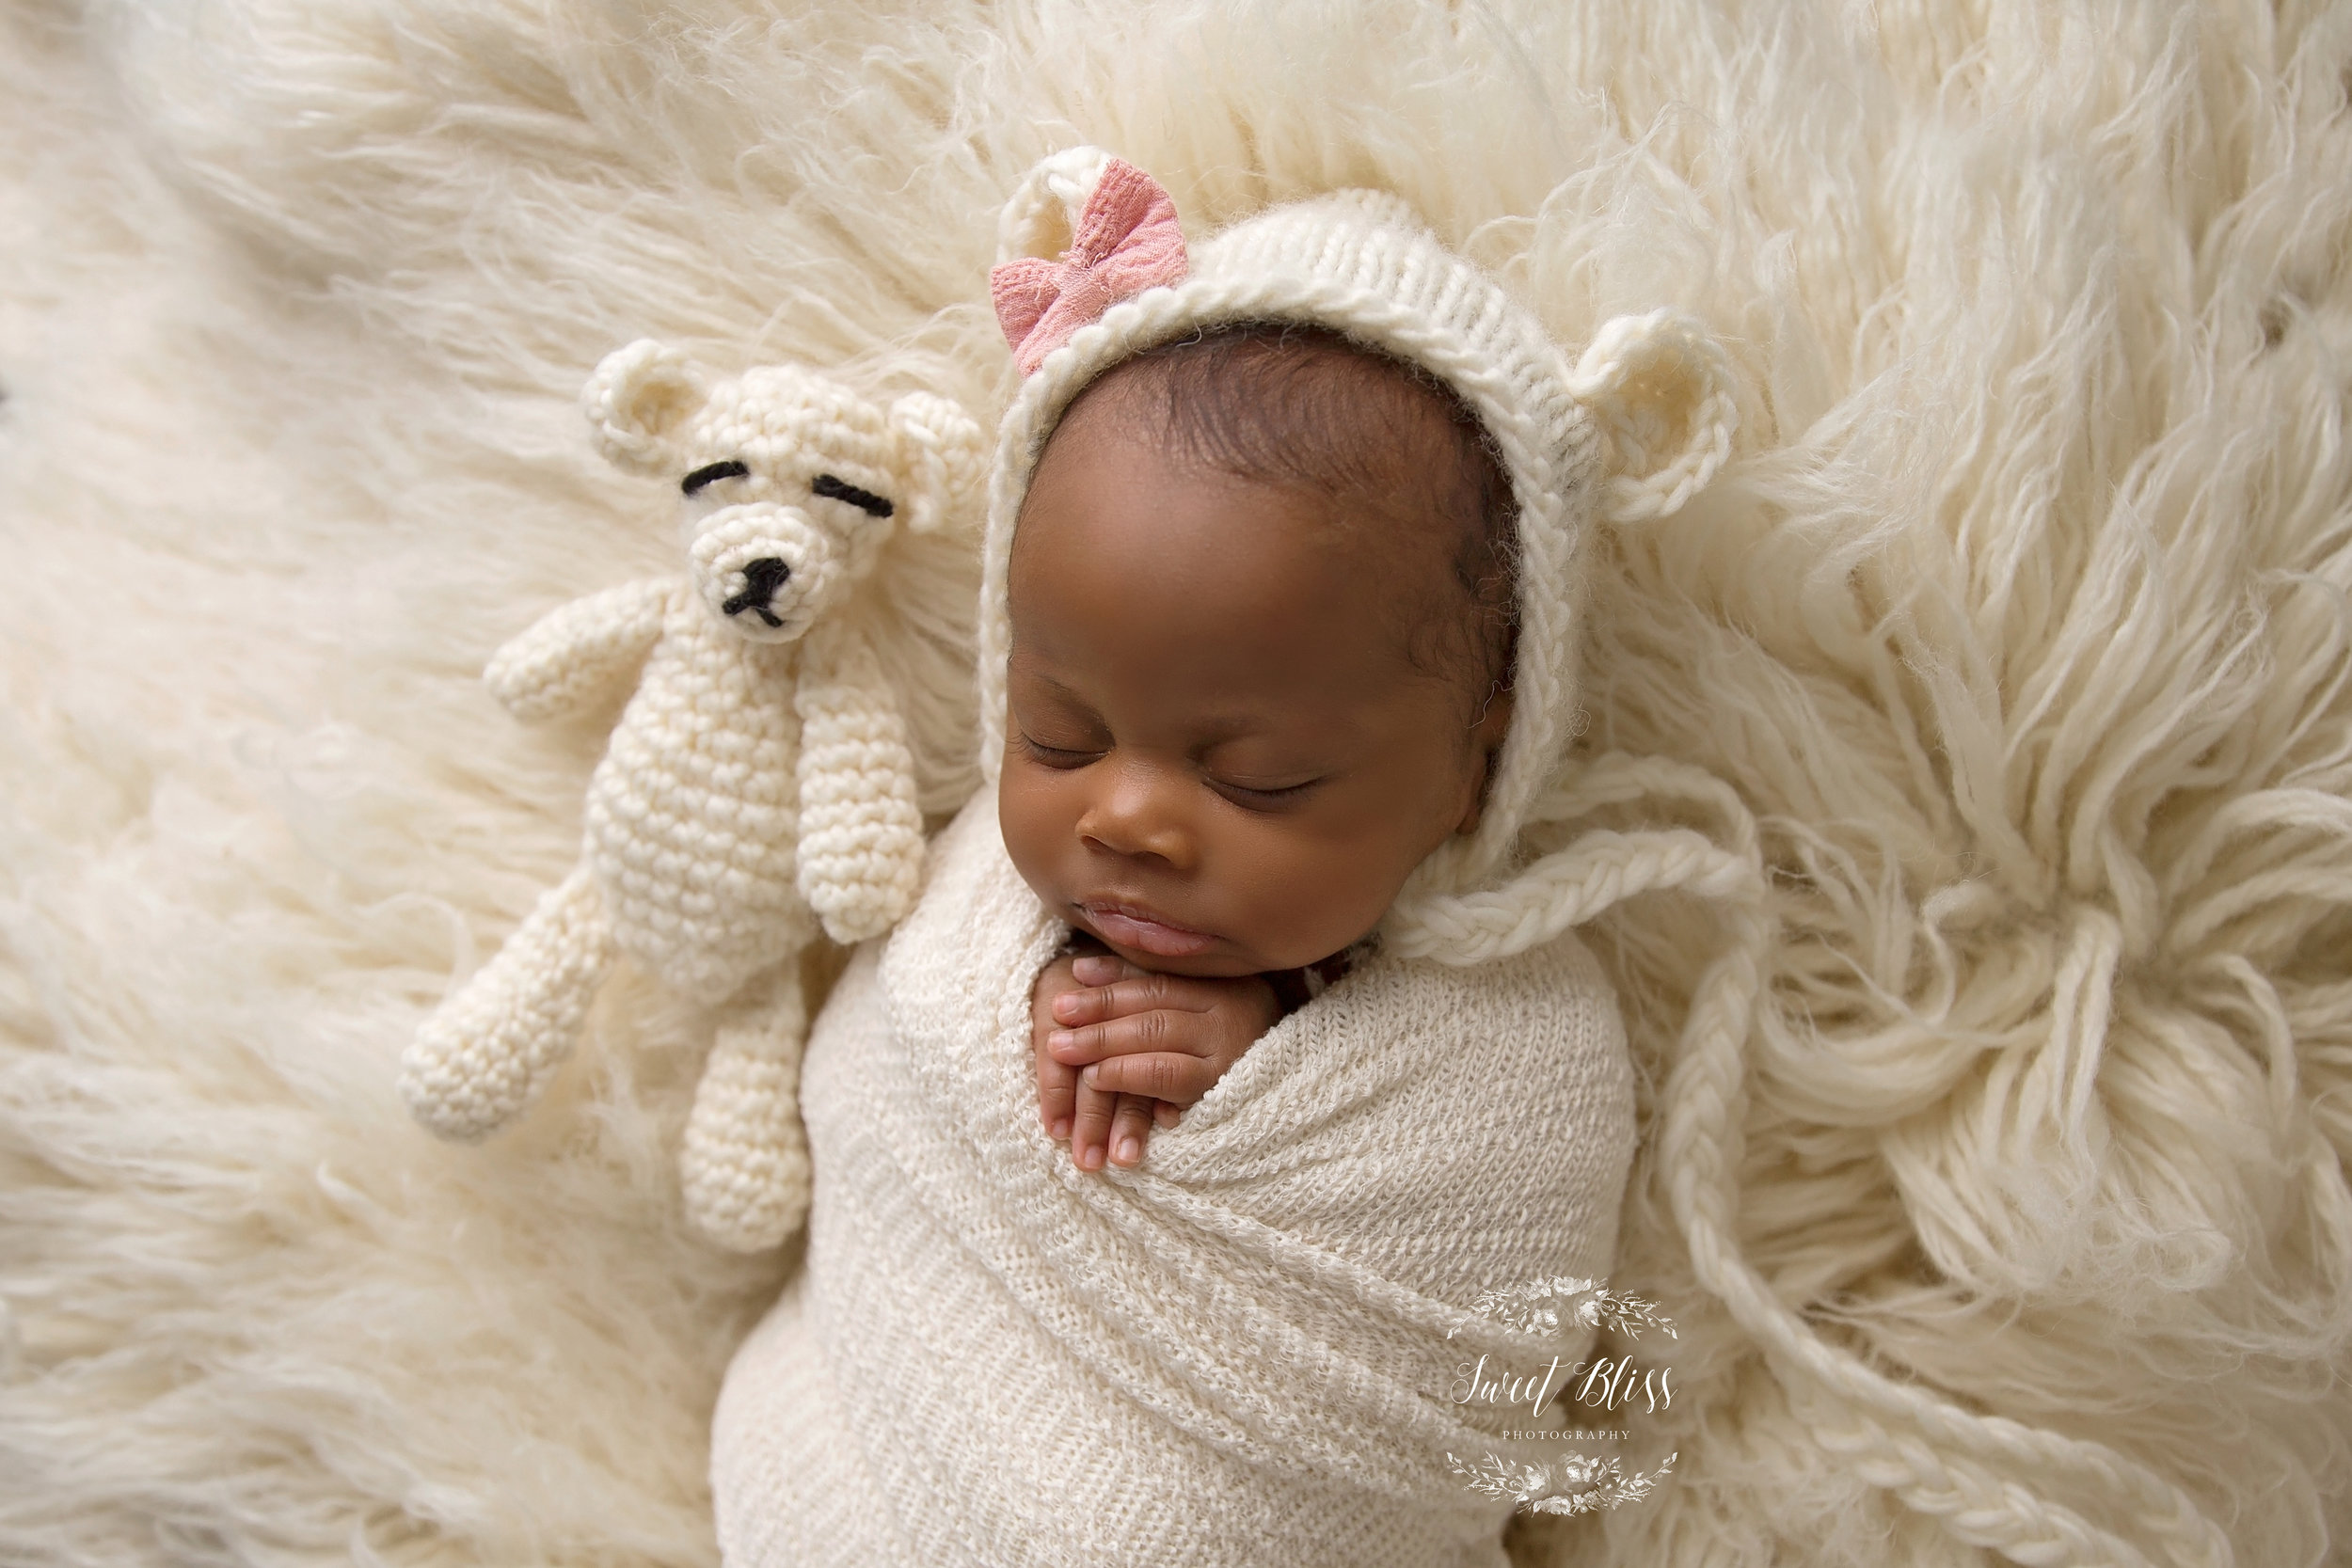 Harfordcountynewborn_SweetBlissPhotography_creamfur4_africannewborngirl.jpg